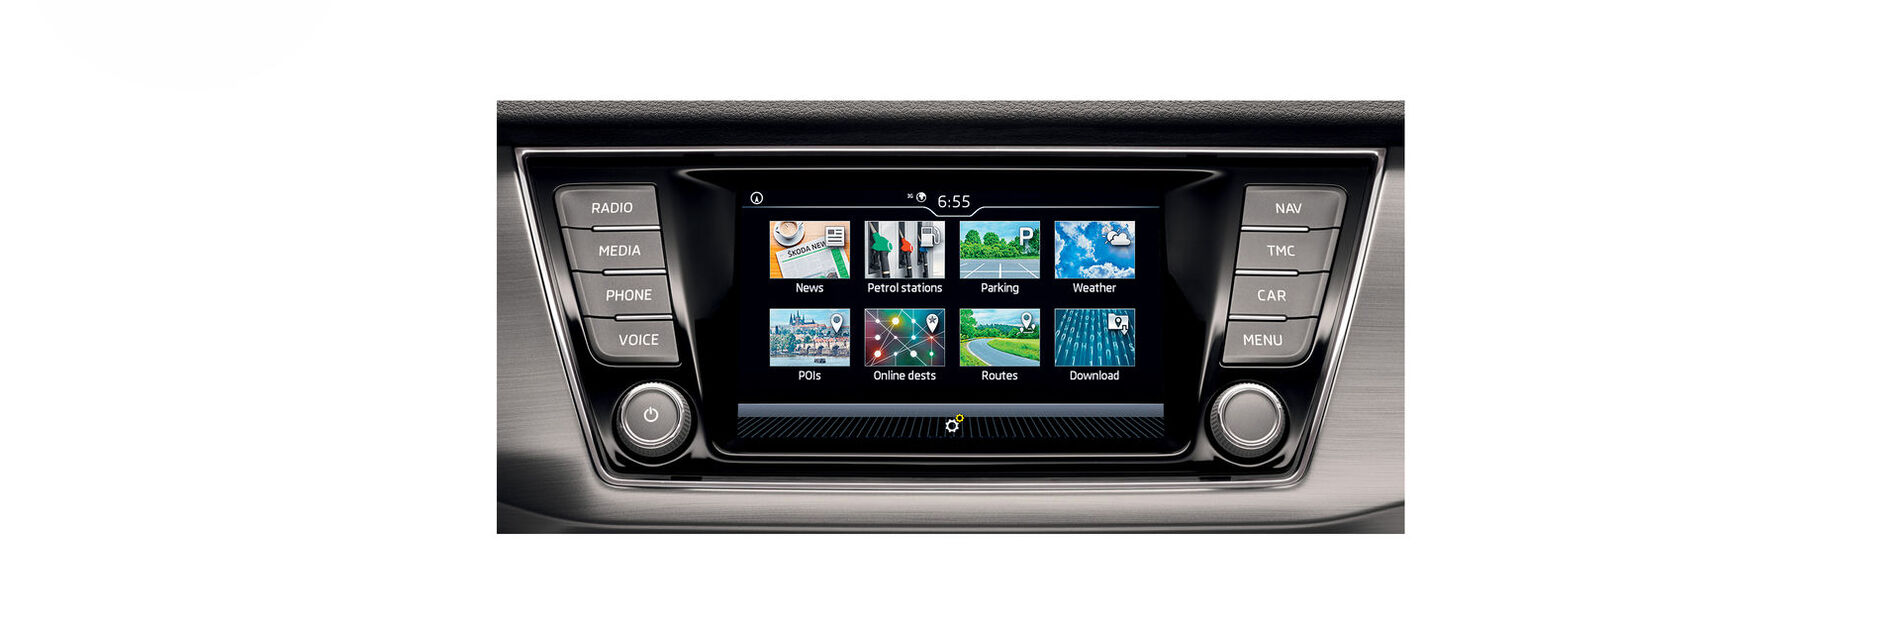 Infotainment Display beim SKODA FABIA Combi